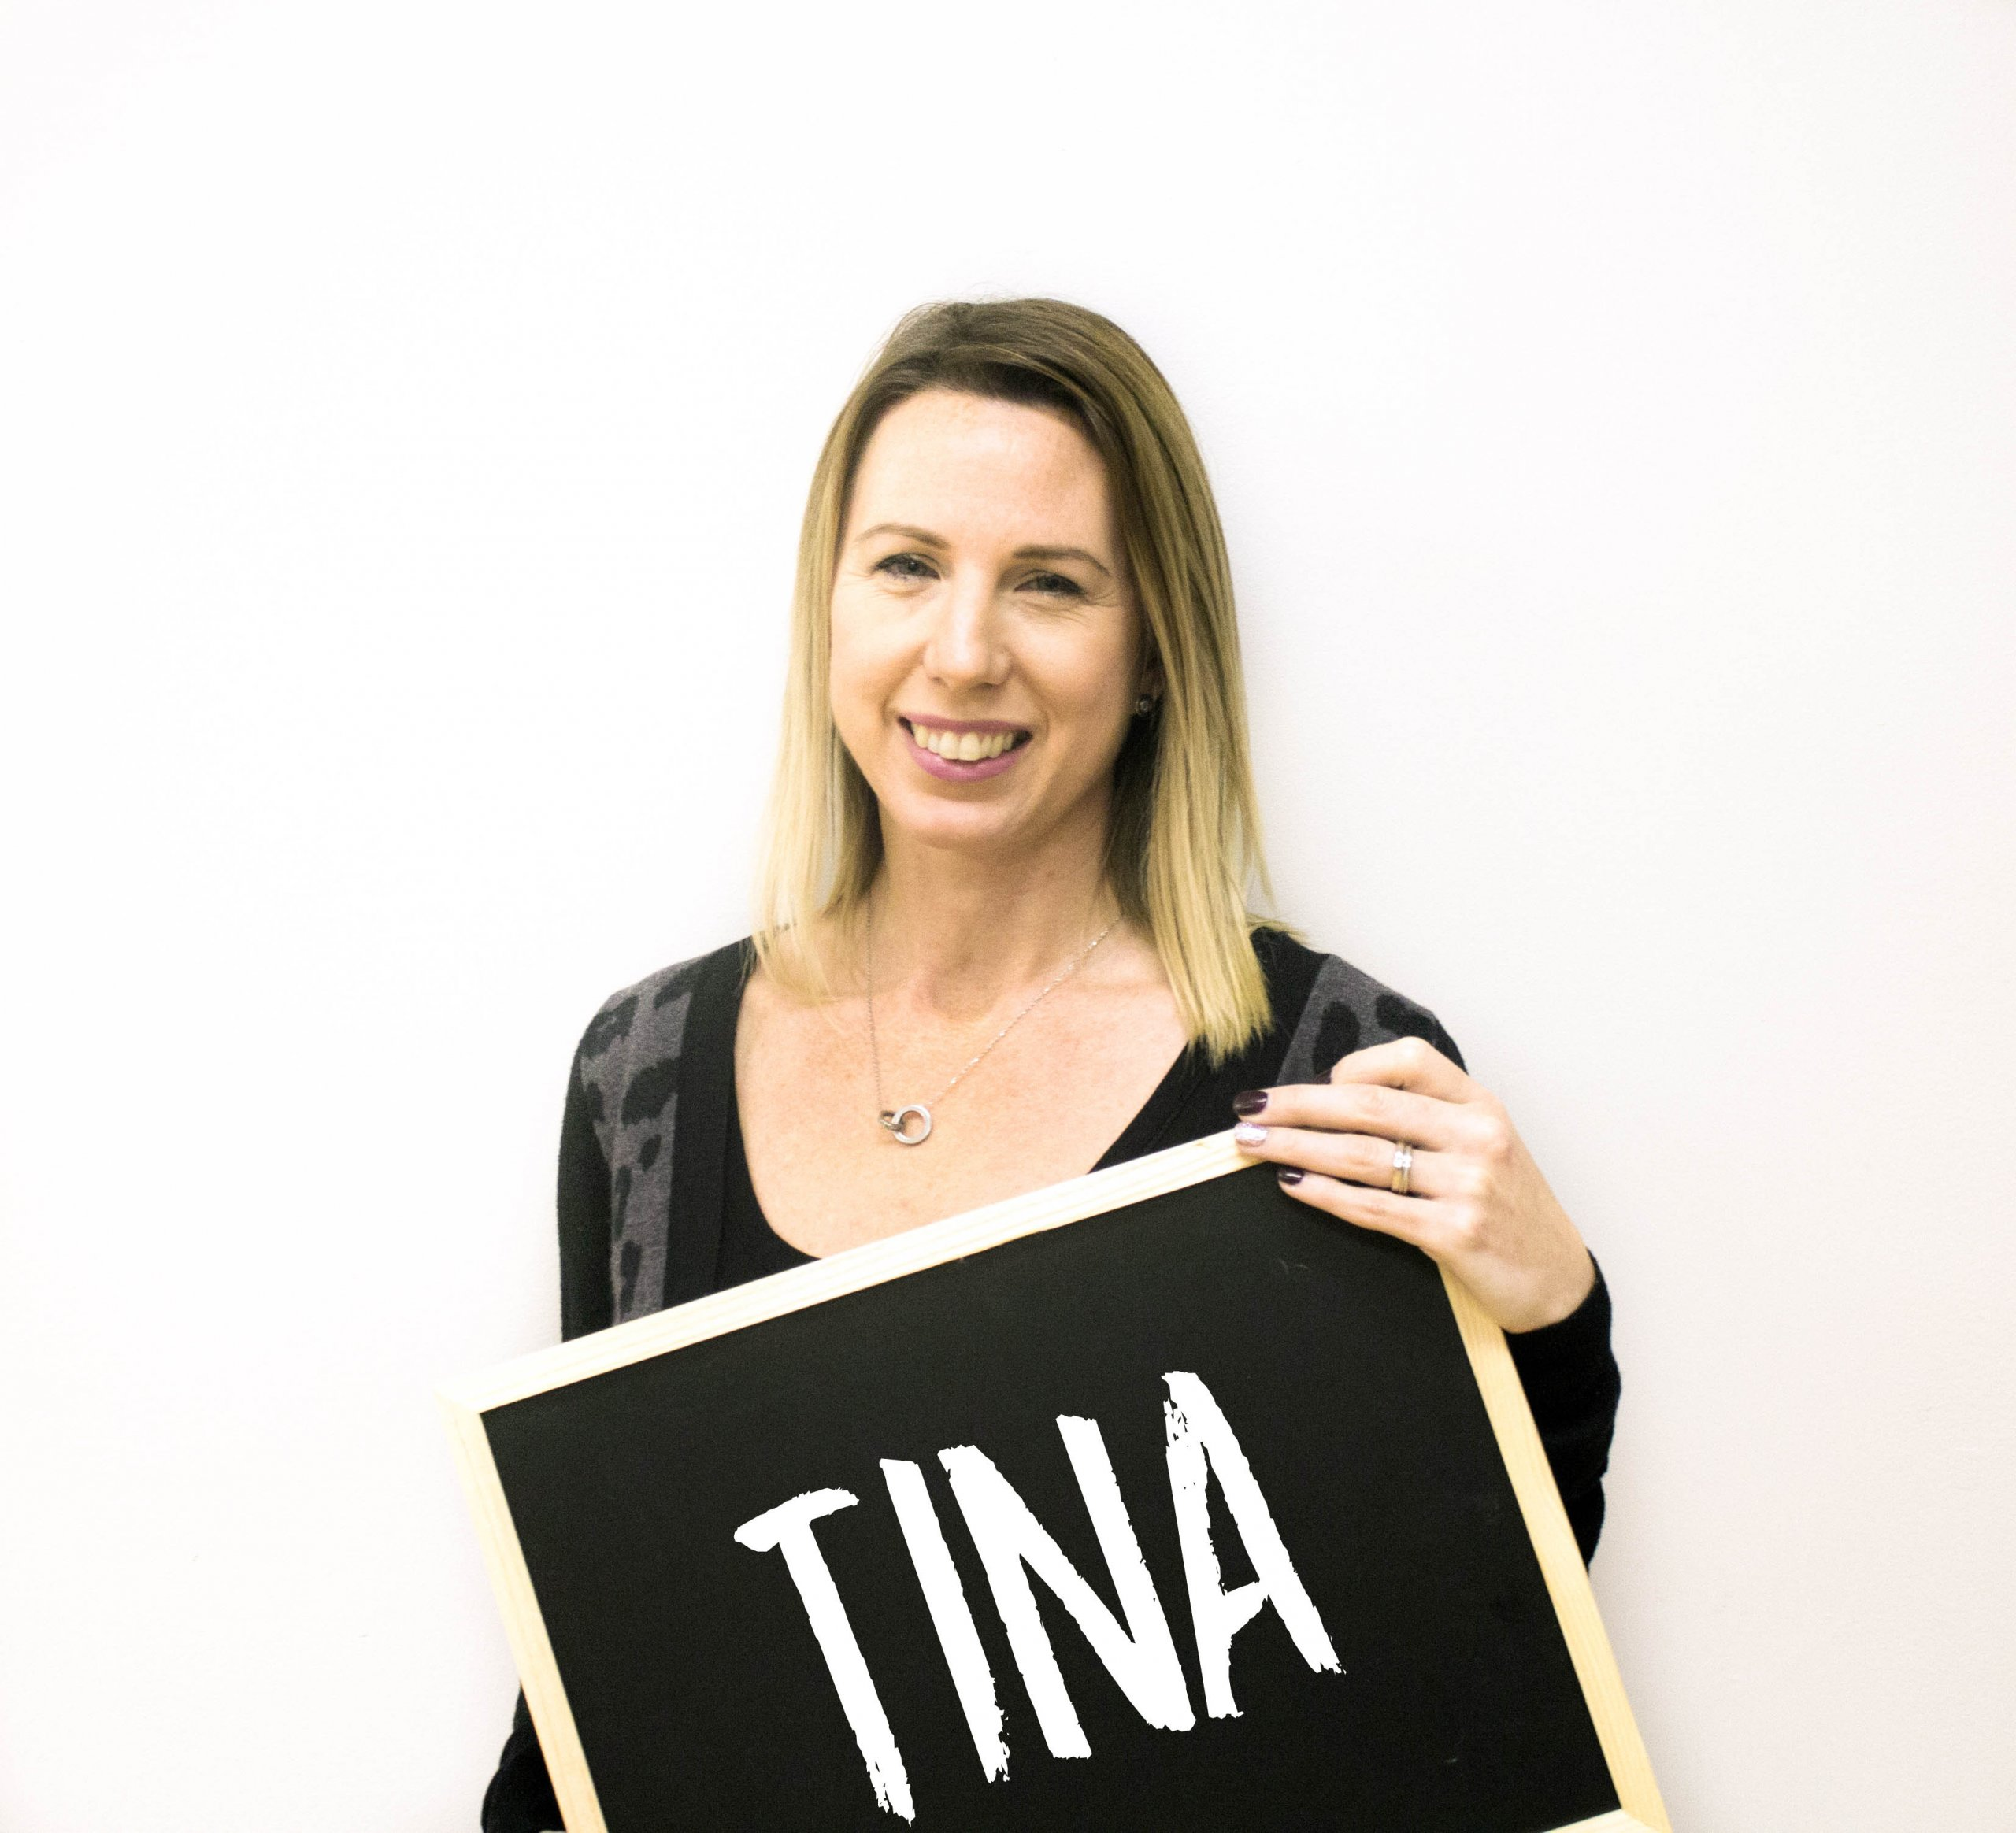 Tina Wholesale Manager